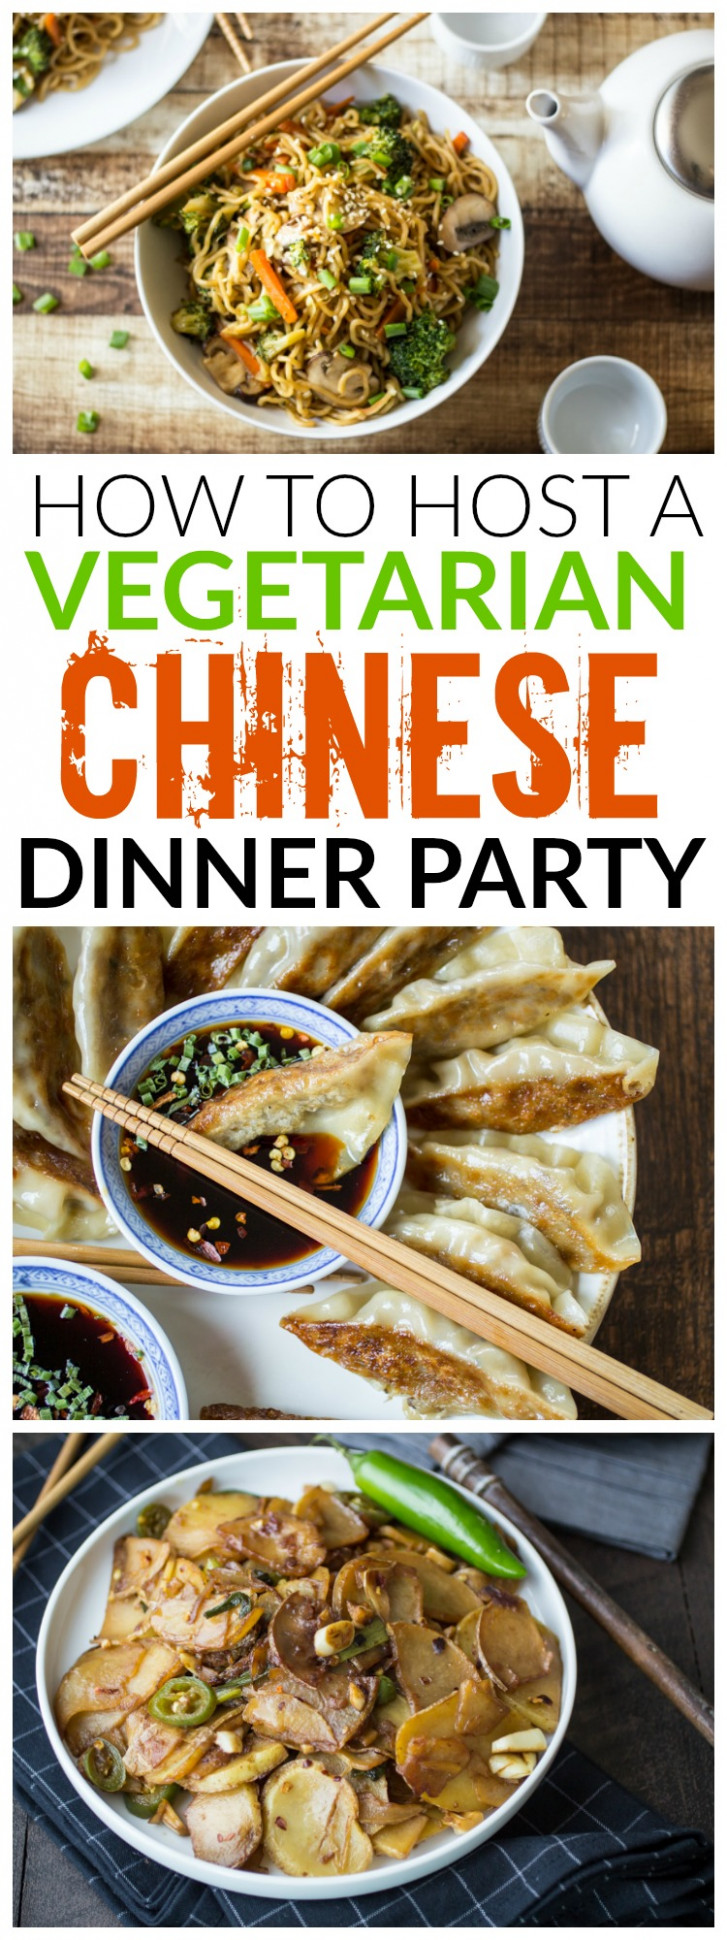 Vegetarian Chinese Dinner Party Menu - The Wanderlust Kitchen